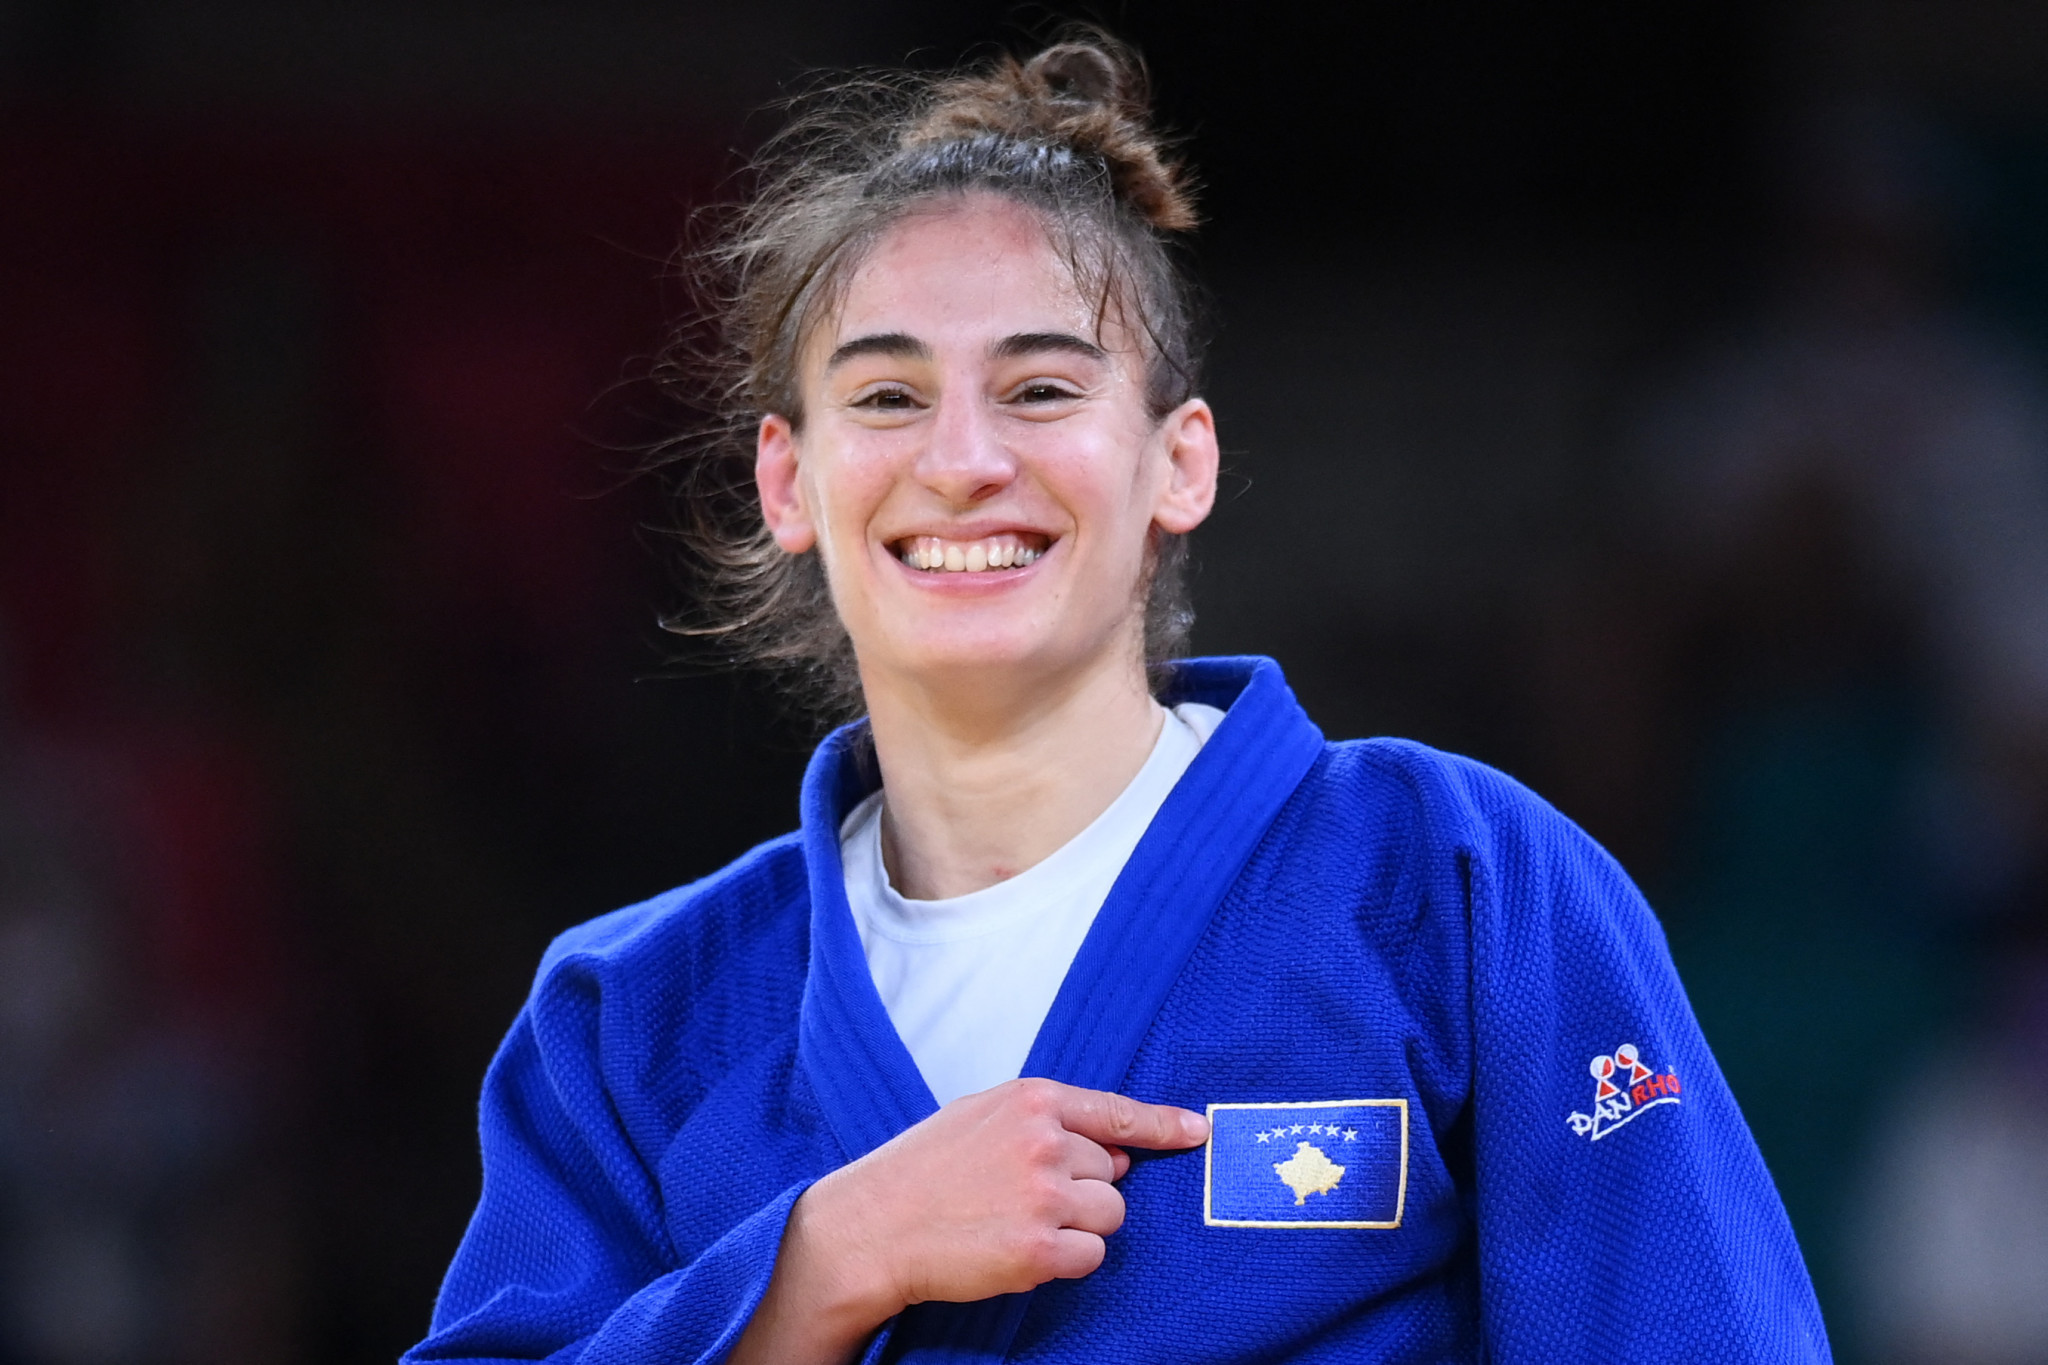 Kosovo's Nora Gjakova also won a gold medal at the 2018 European Judo Championships ©Getty Images